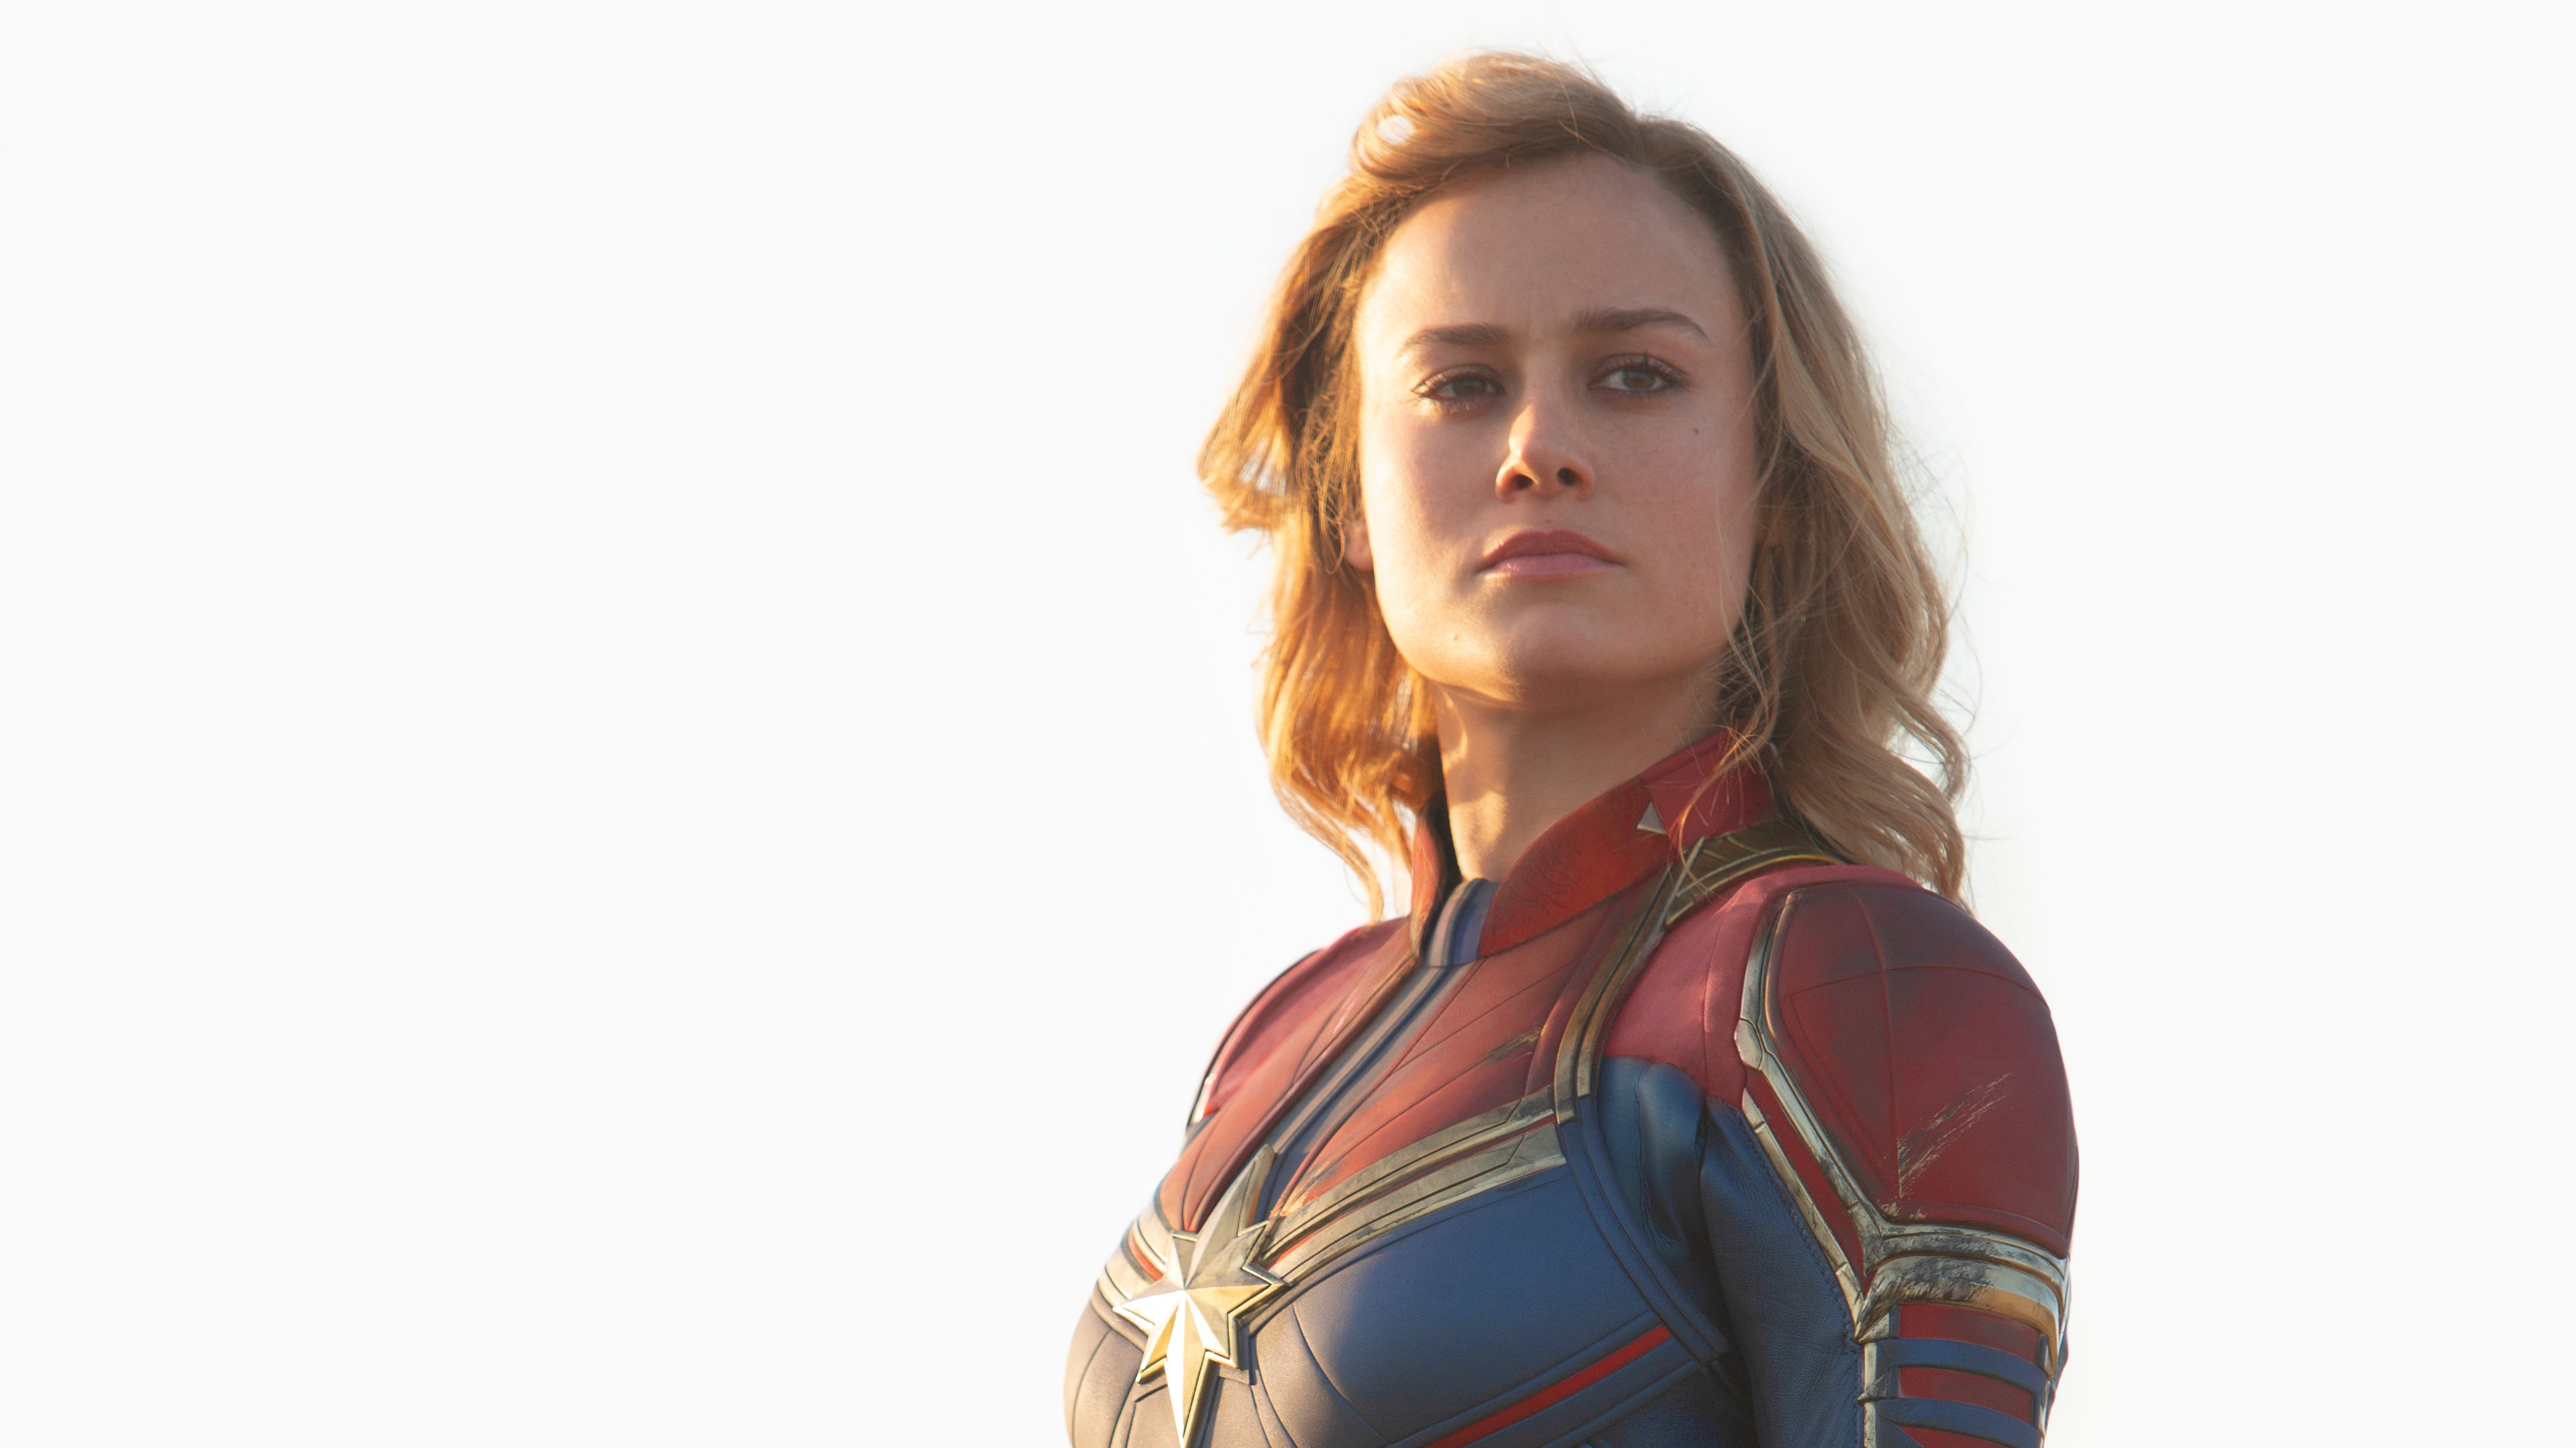 brie-larson captain-marvel costumes disney io9 kevin-feige marvel marvel-comics marvel-studios ms-marvel